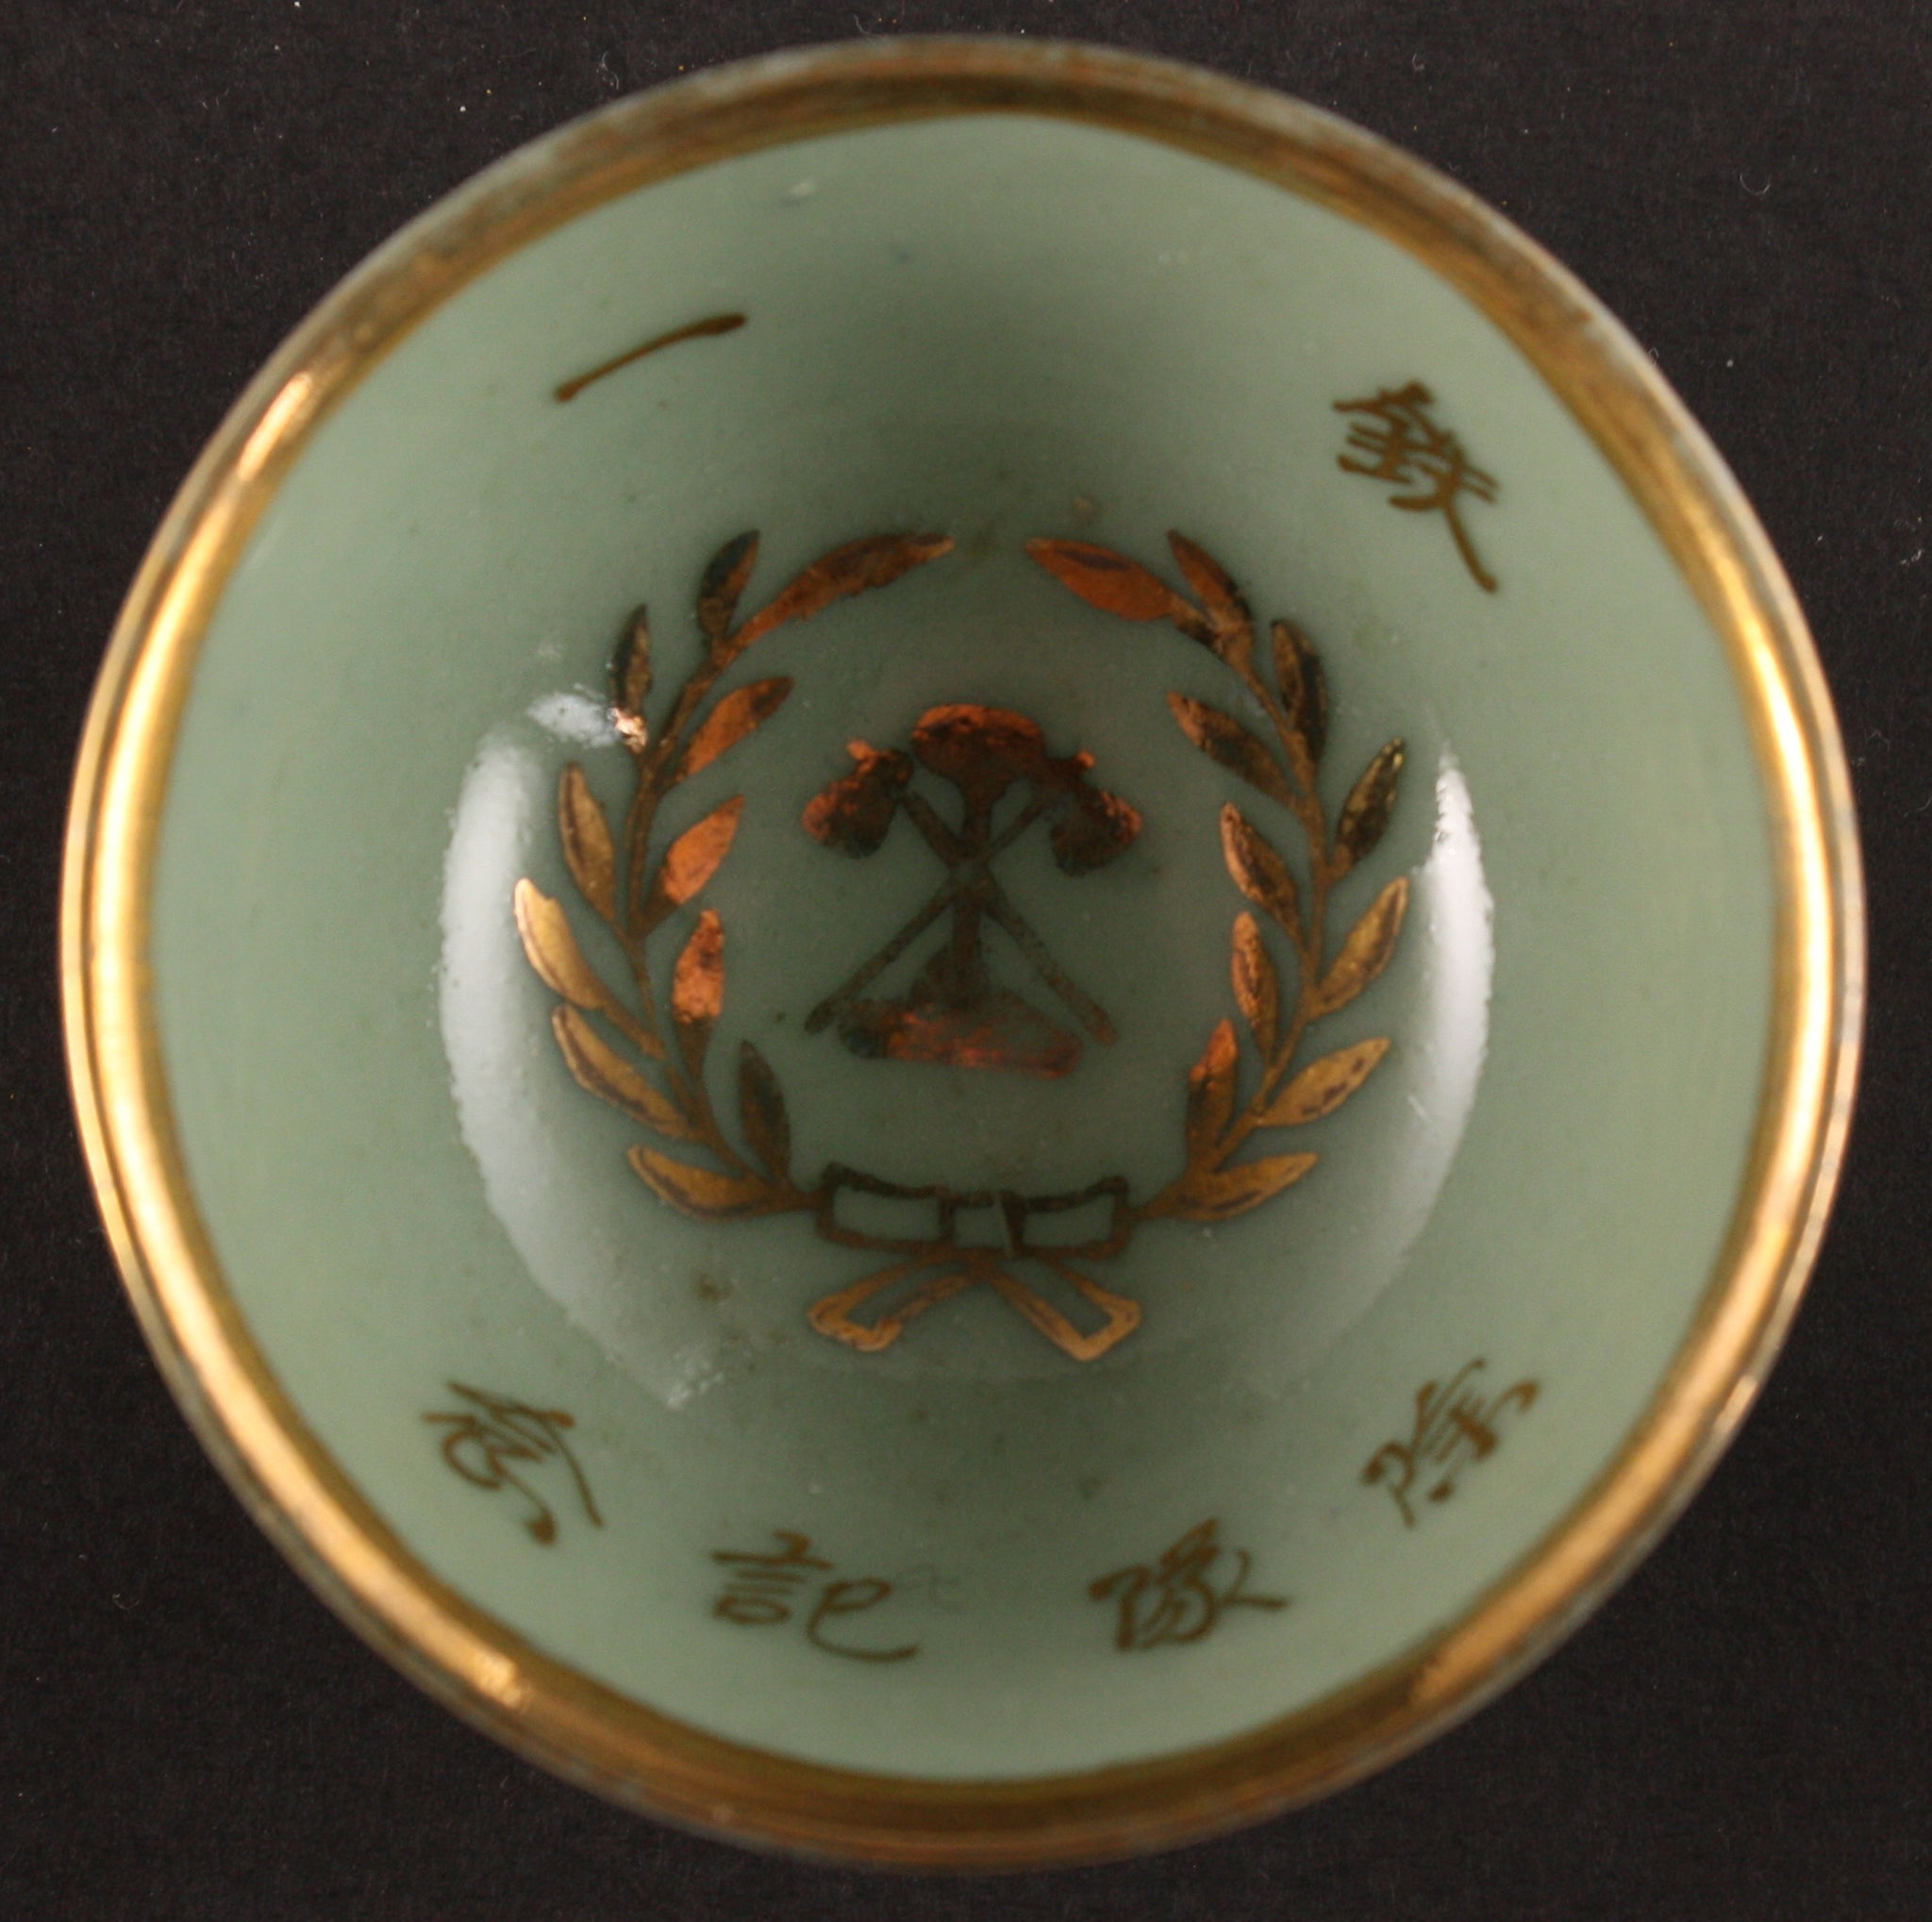 Antique Japanese Military Railroad Regiment Army Sake Cup